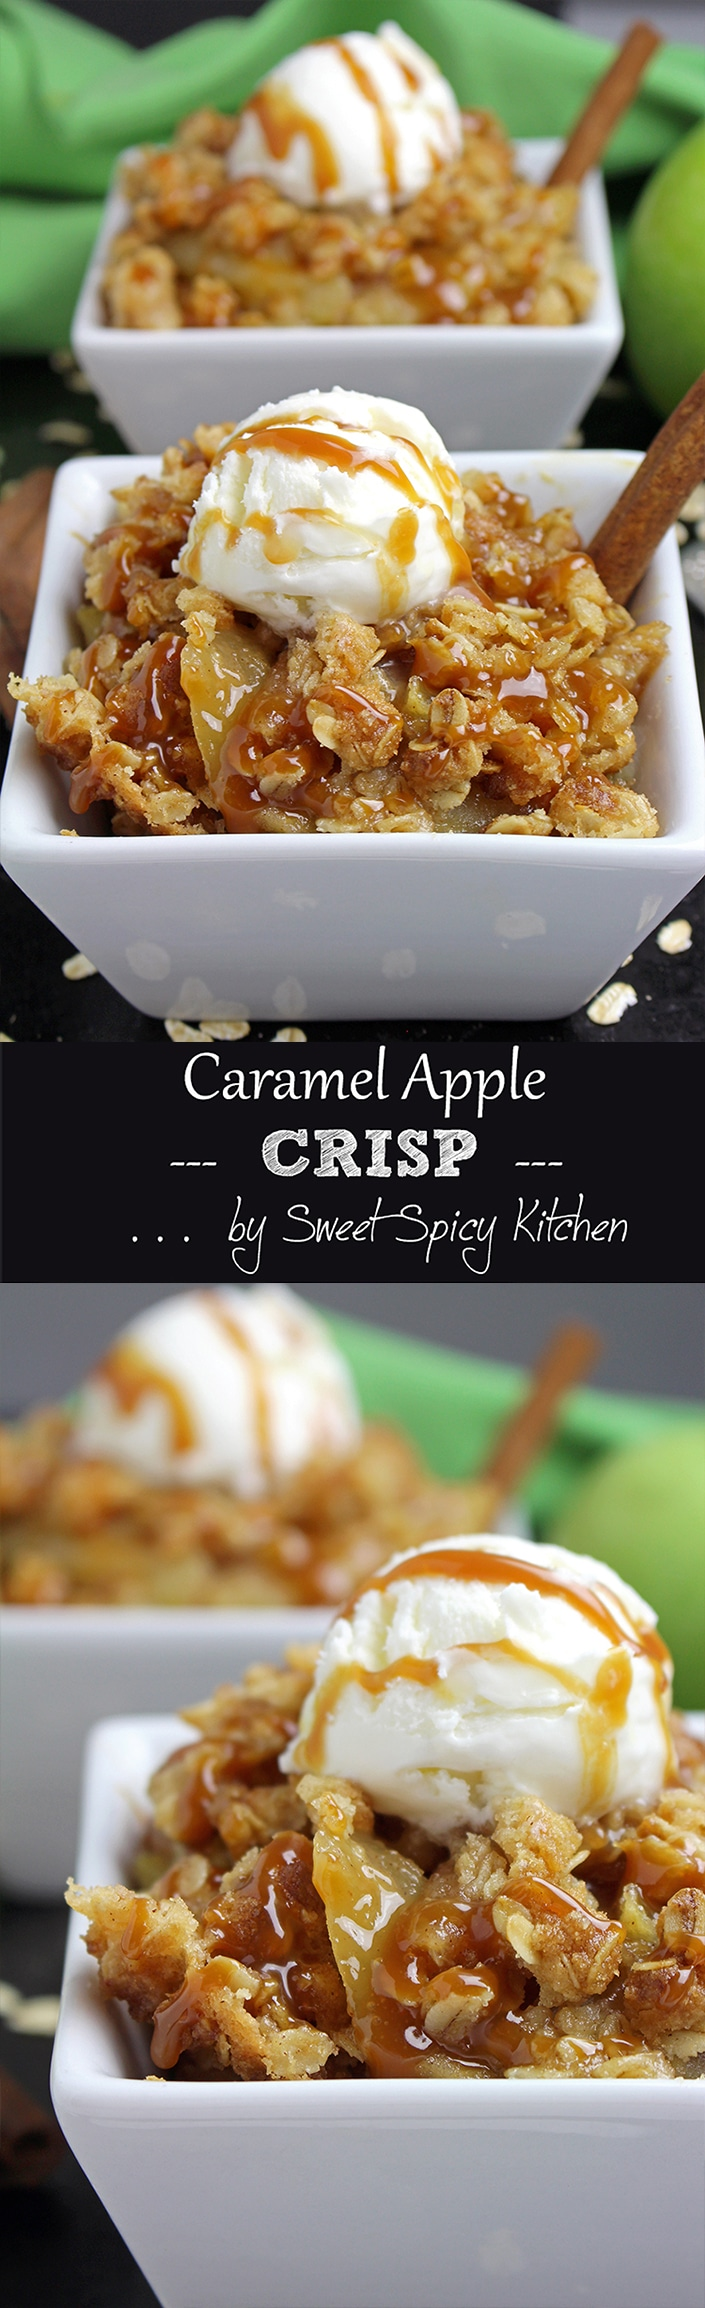 Impress your friends and family with this tasty and delicious dessert recipe – Caramel Apple Crisp